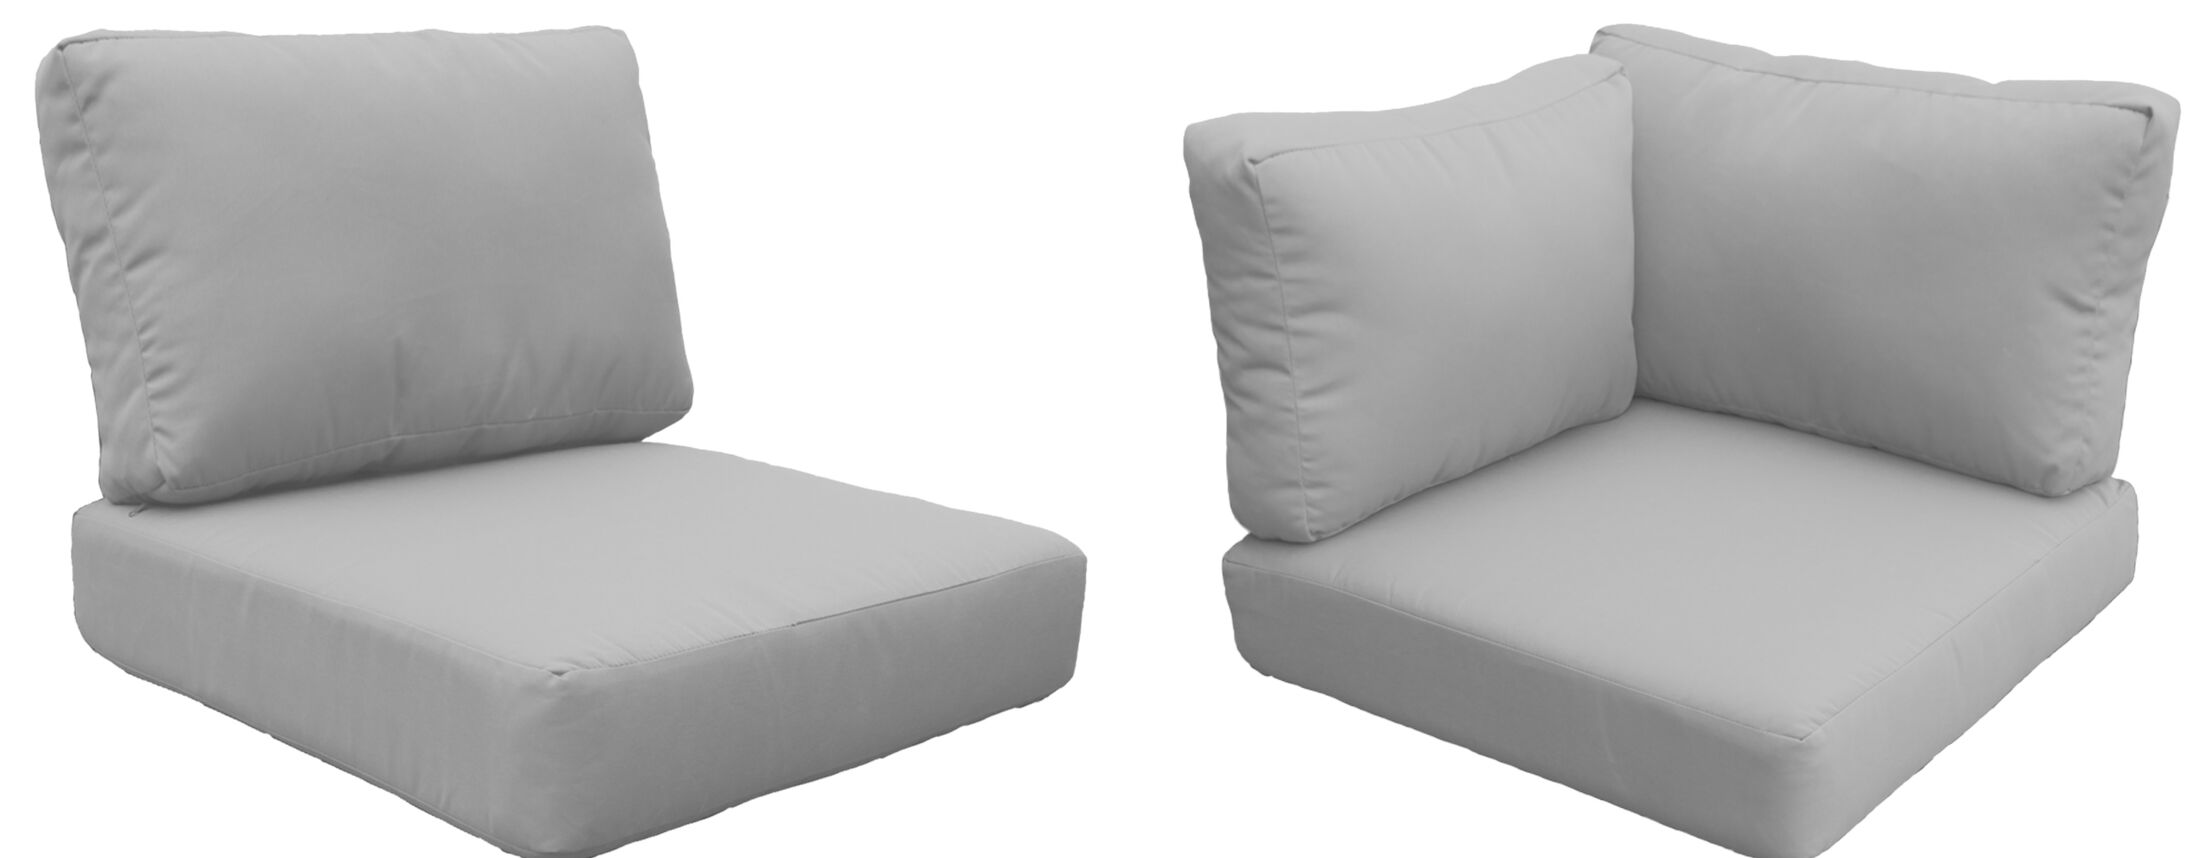 East Village Outdoor 14 Piece Outdoor Cushion Set Fabric: Gray